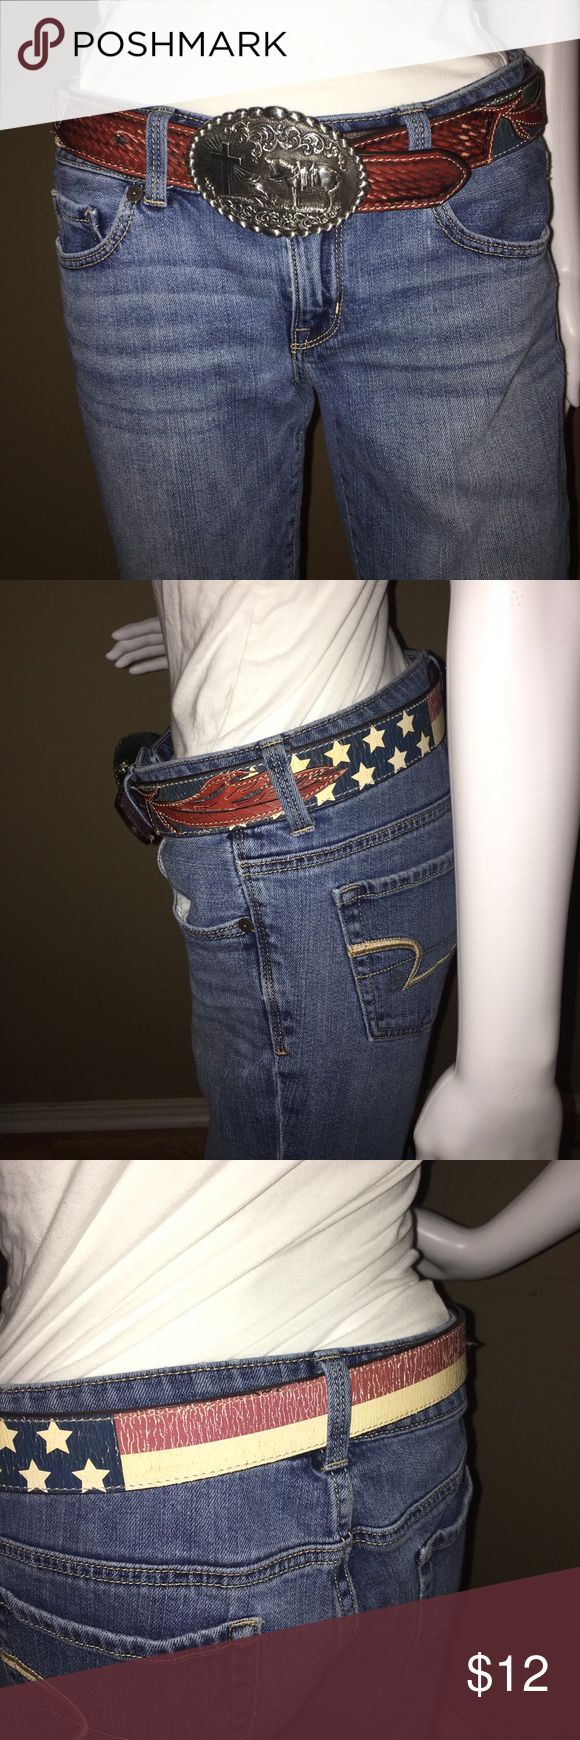 American flag print belt Belt American flag style with loan cowboy and horse buckle Accessories Belts